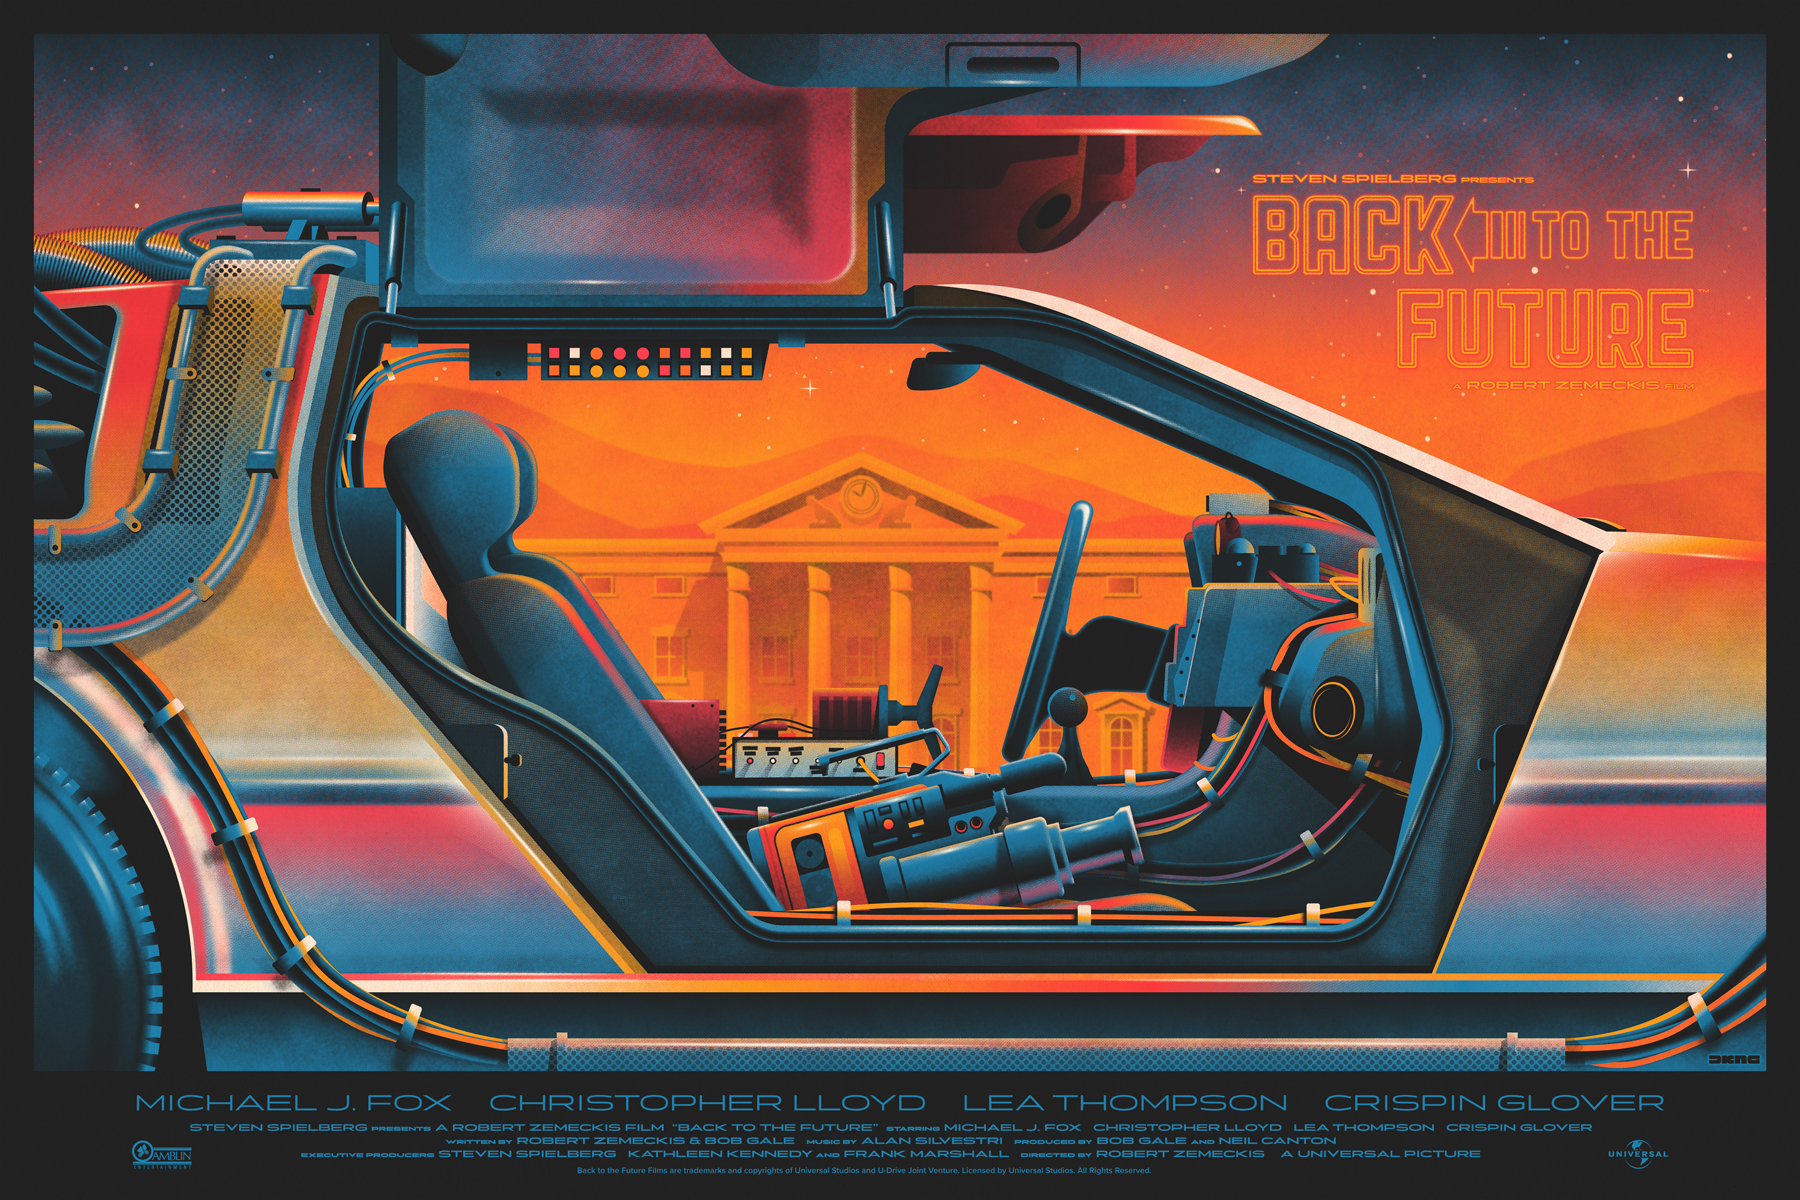 Back to the Future poster by DKNG